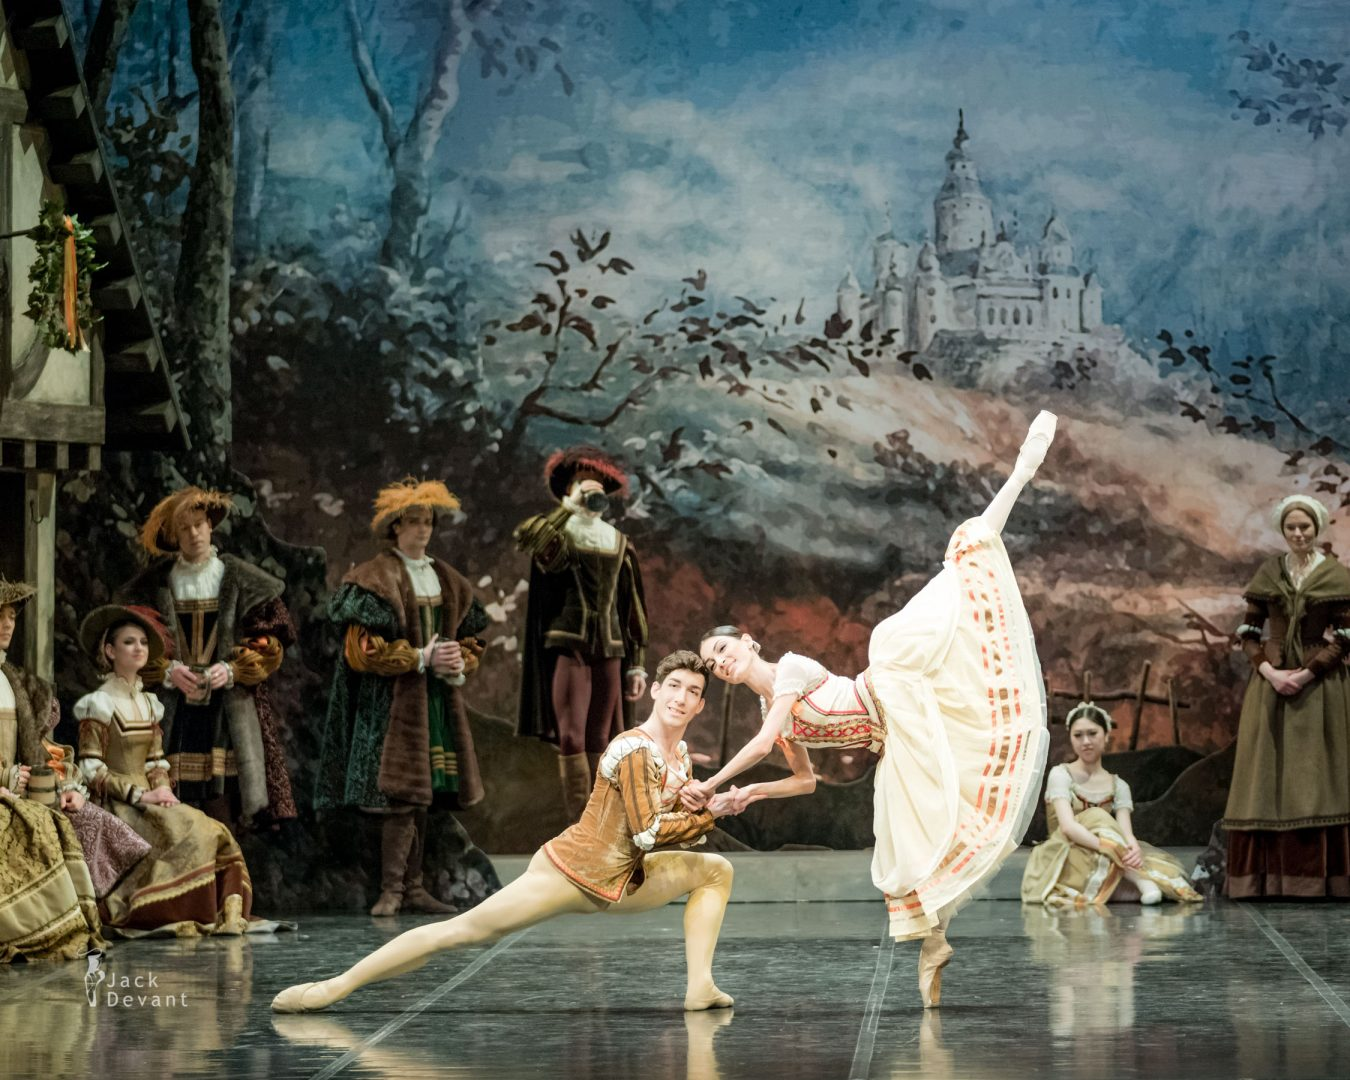 Giselle, Marta Navasardyan and Eneko Amoros in peasant pdd heads